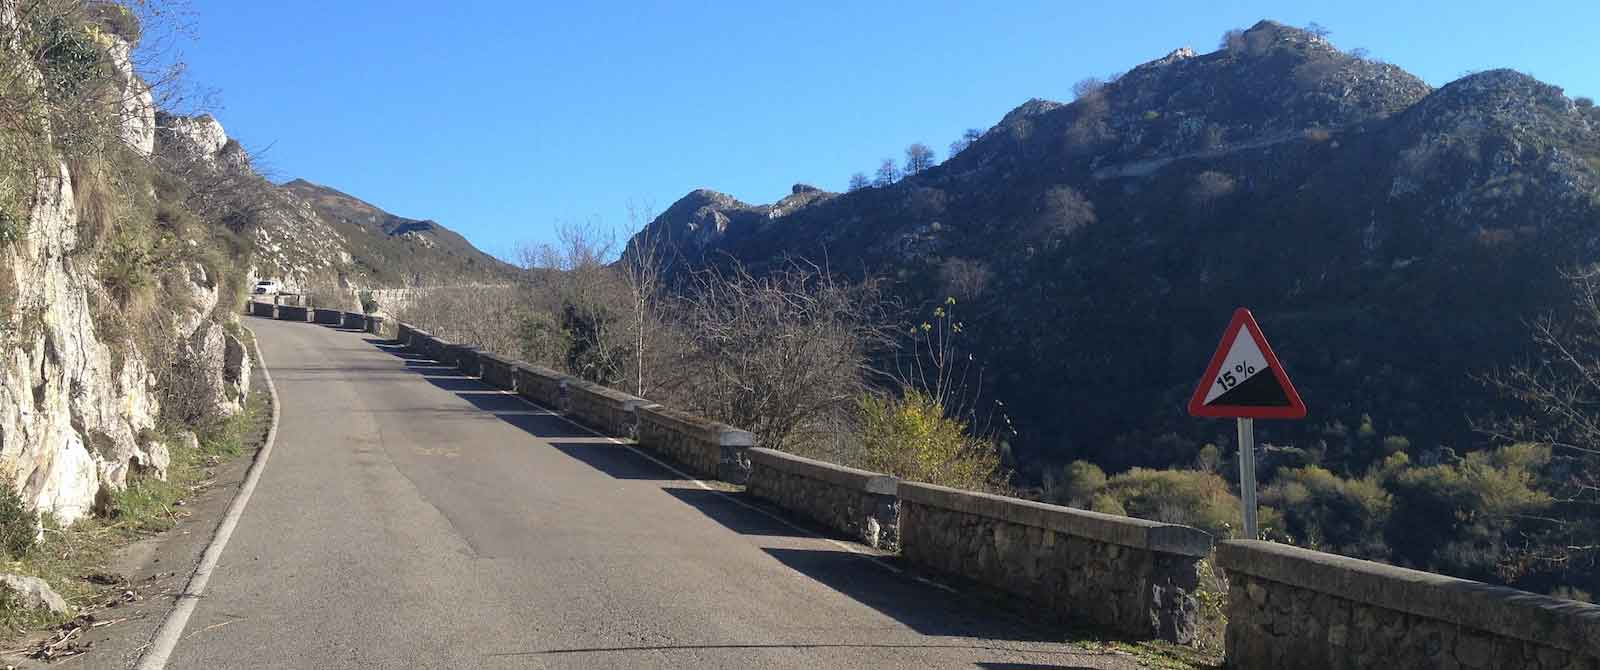 bike tours spain difficulty mountain image